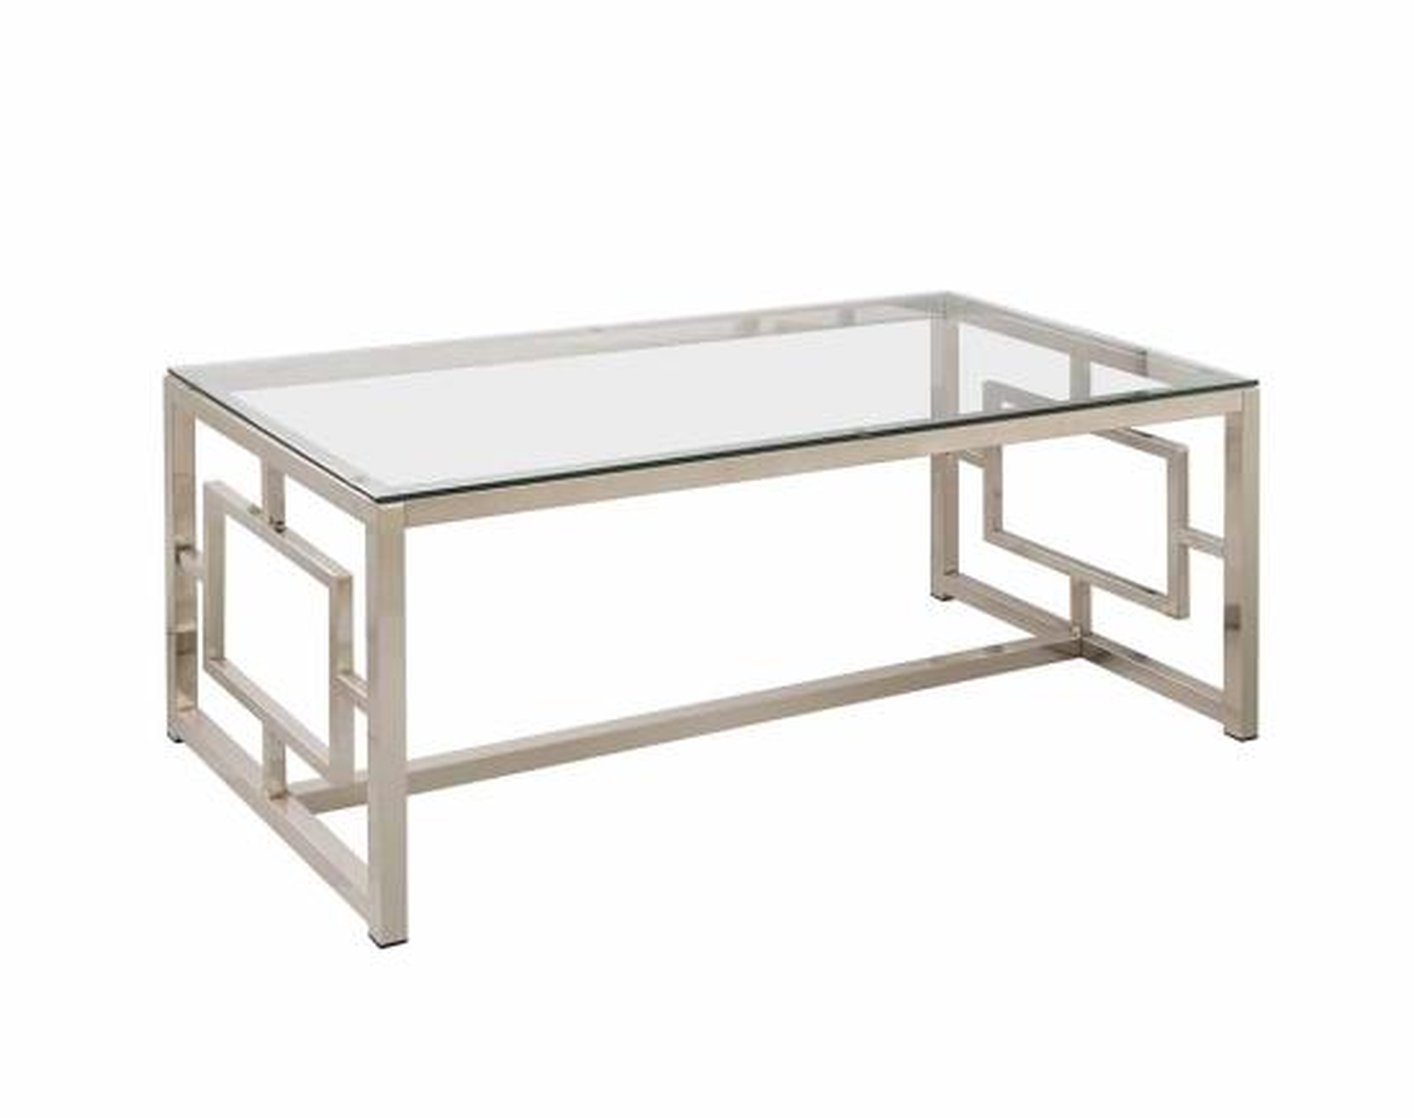 Coaster 703738 Silver Glass Coffee Table Steal A Sofa Furniture Outlet Los Angeles Ca